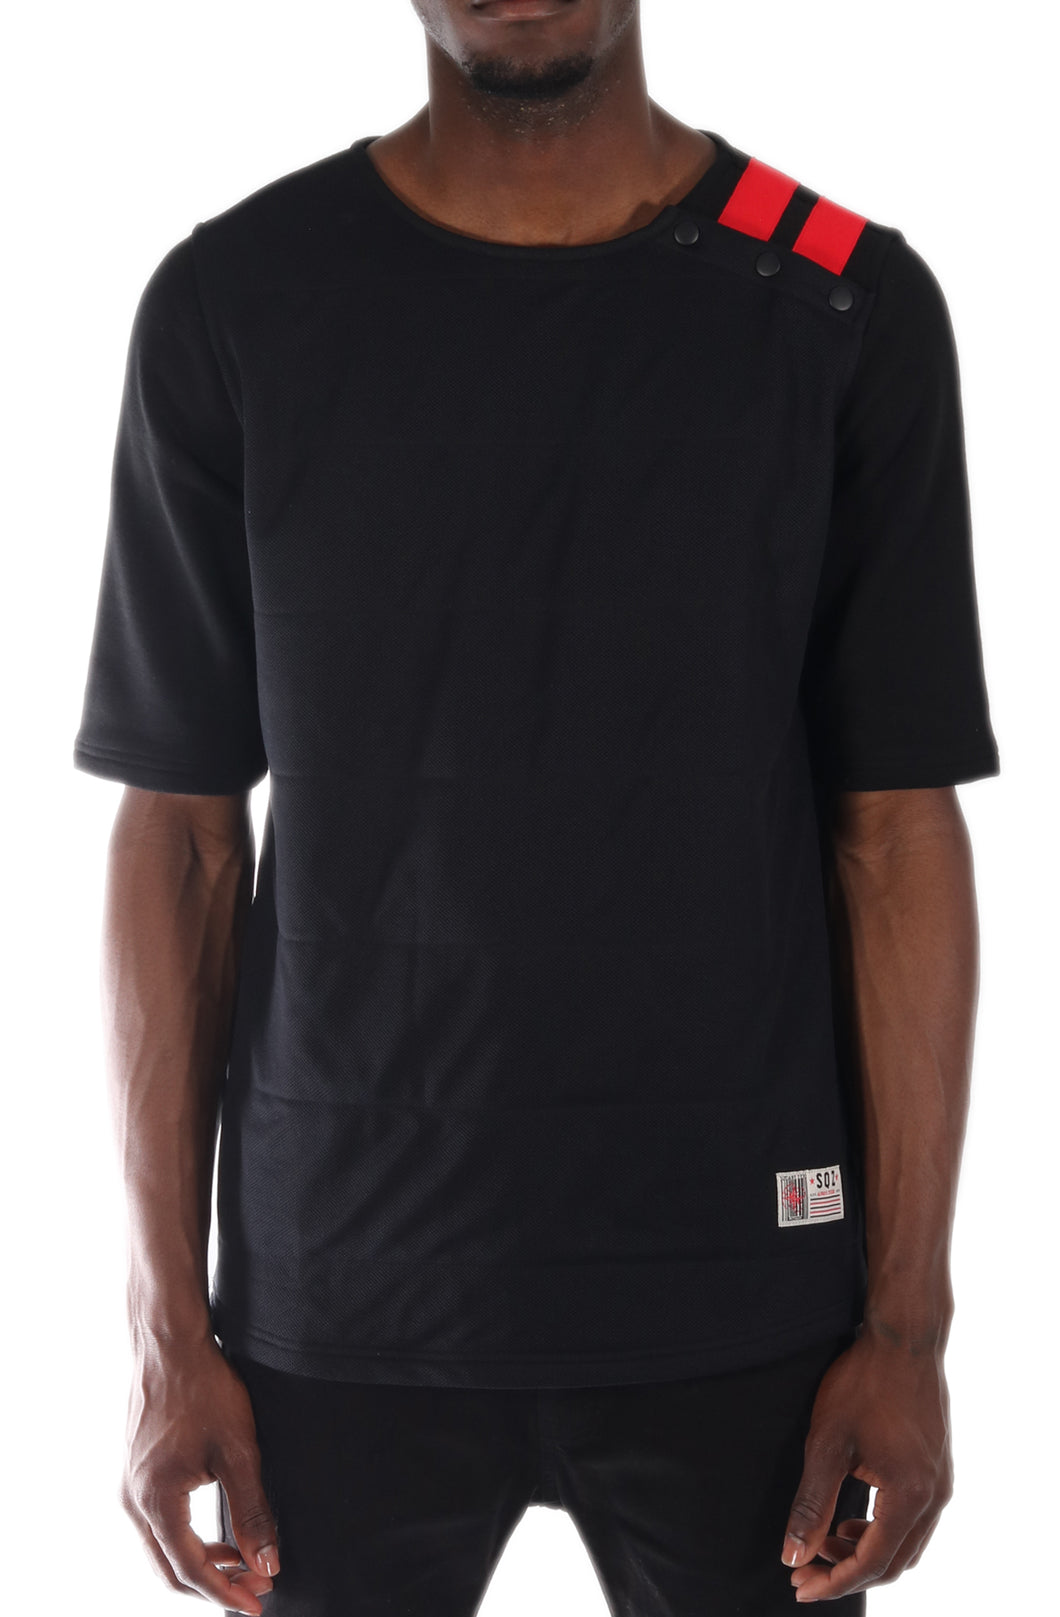 S.F.C Premium Cotton French Terry Double Layered Front Mesh Short Sleeve Tee in Black